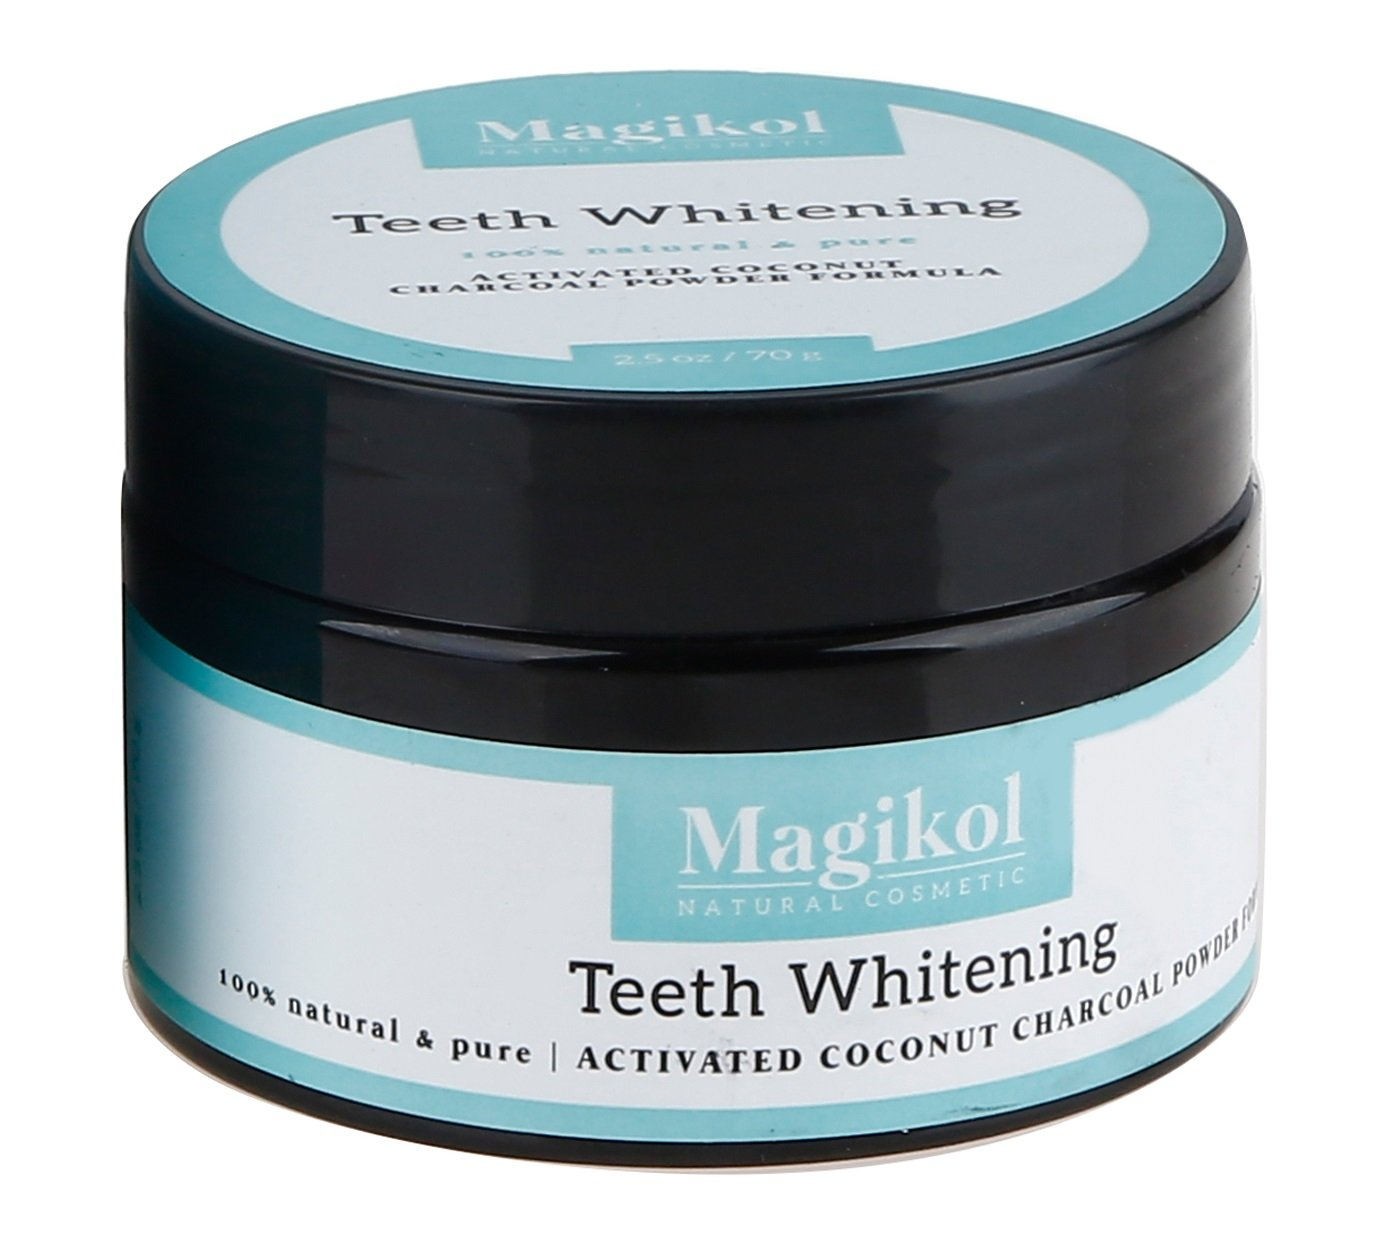 Magikol Teeth Whitening Activated Coconut Charcoal Powder | 100% Pure & Natural Active Whitener | Prime Organic Wow Ingredients- No Fluoride | Better than Gel, Strips,Toothpaste | Extra Large 70g